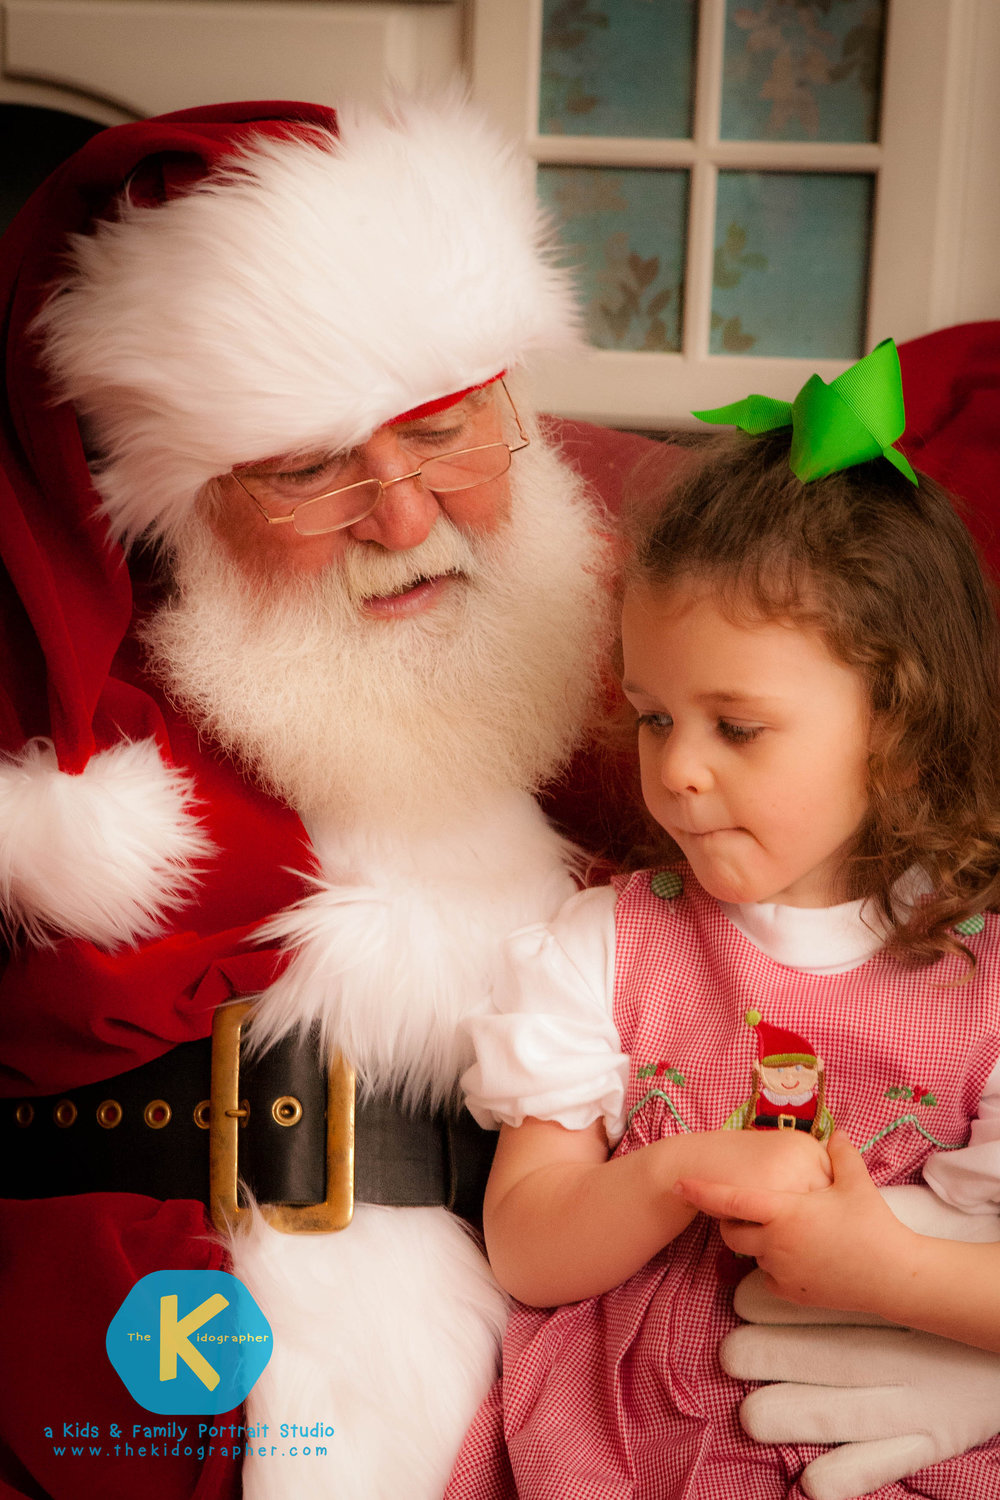 THE_KIDOGRAPHER_PHOTOS_WITH_SANTA-25.jpg